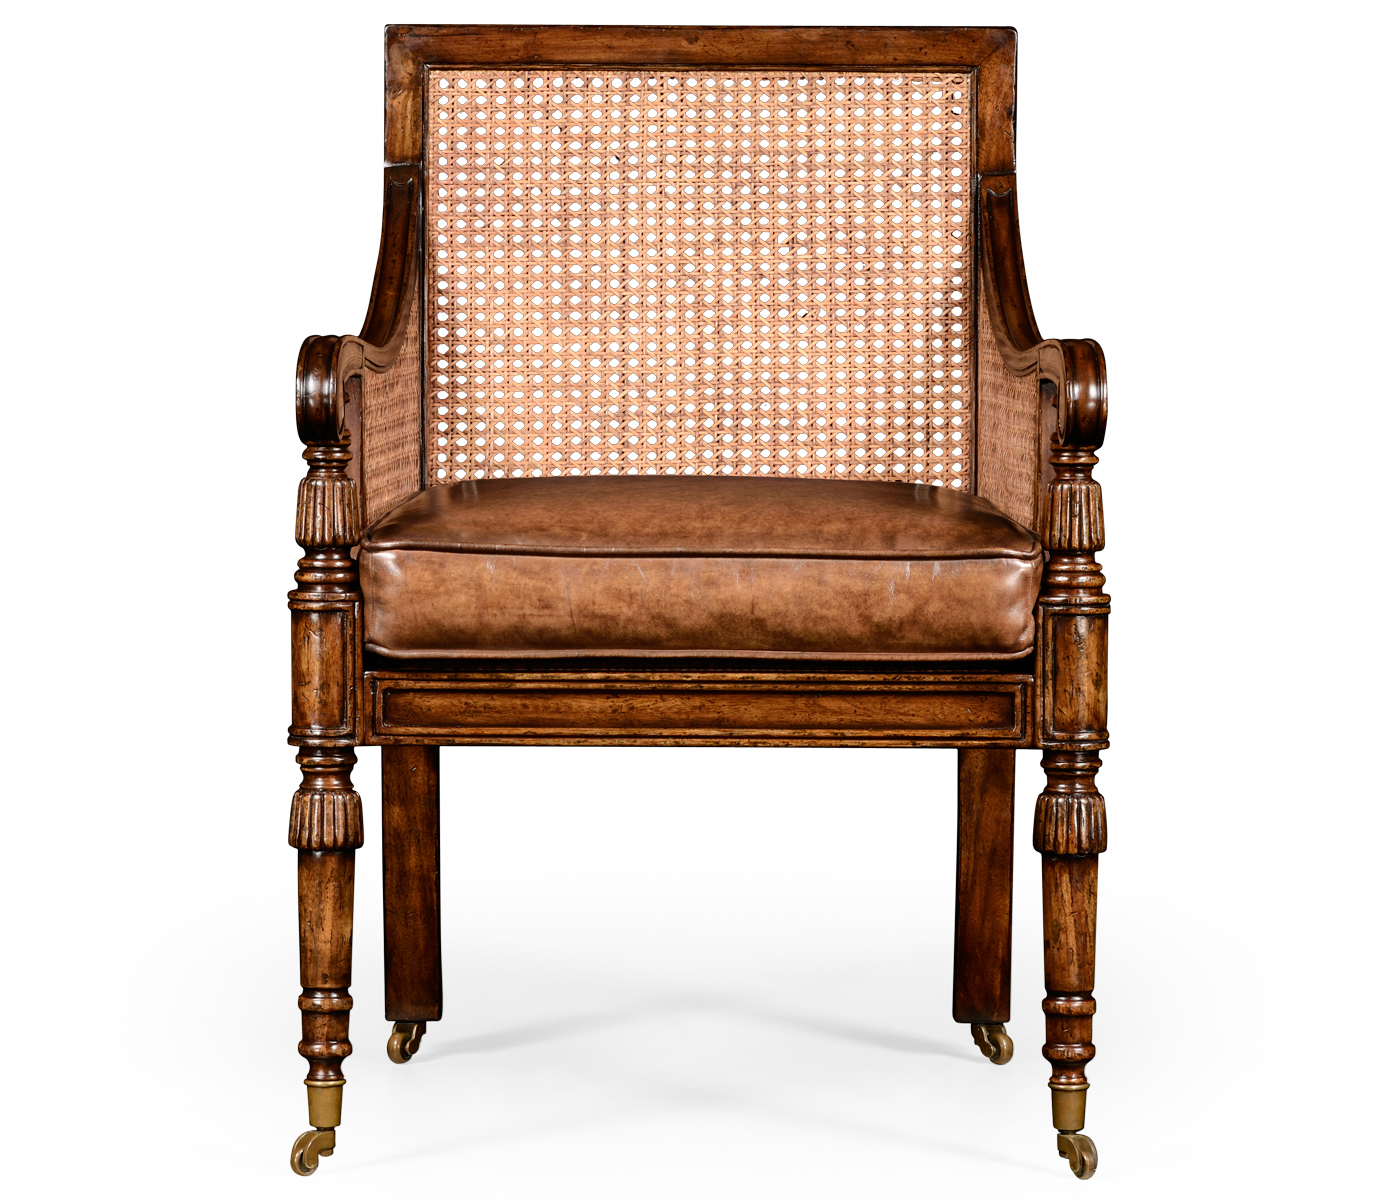 bergere chairs turquoise metal chair caned walnut in medium antique chestnut